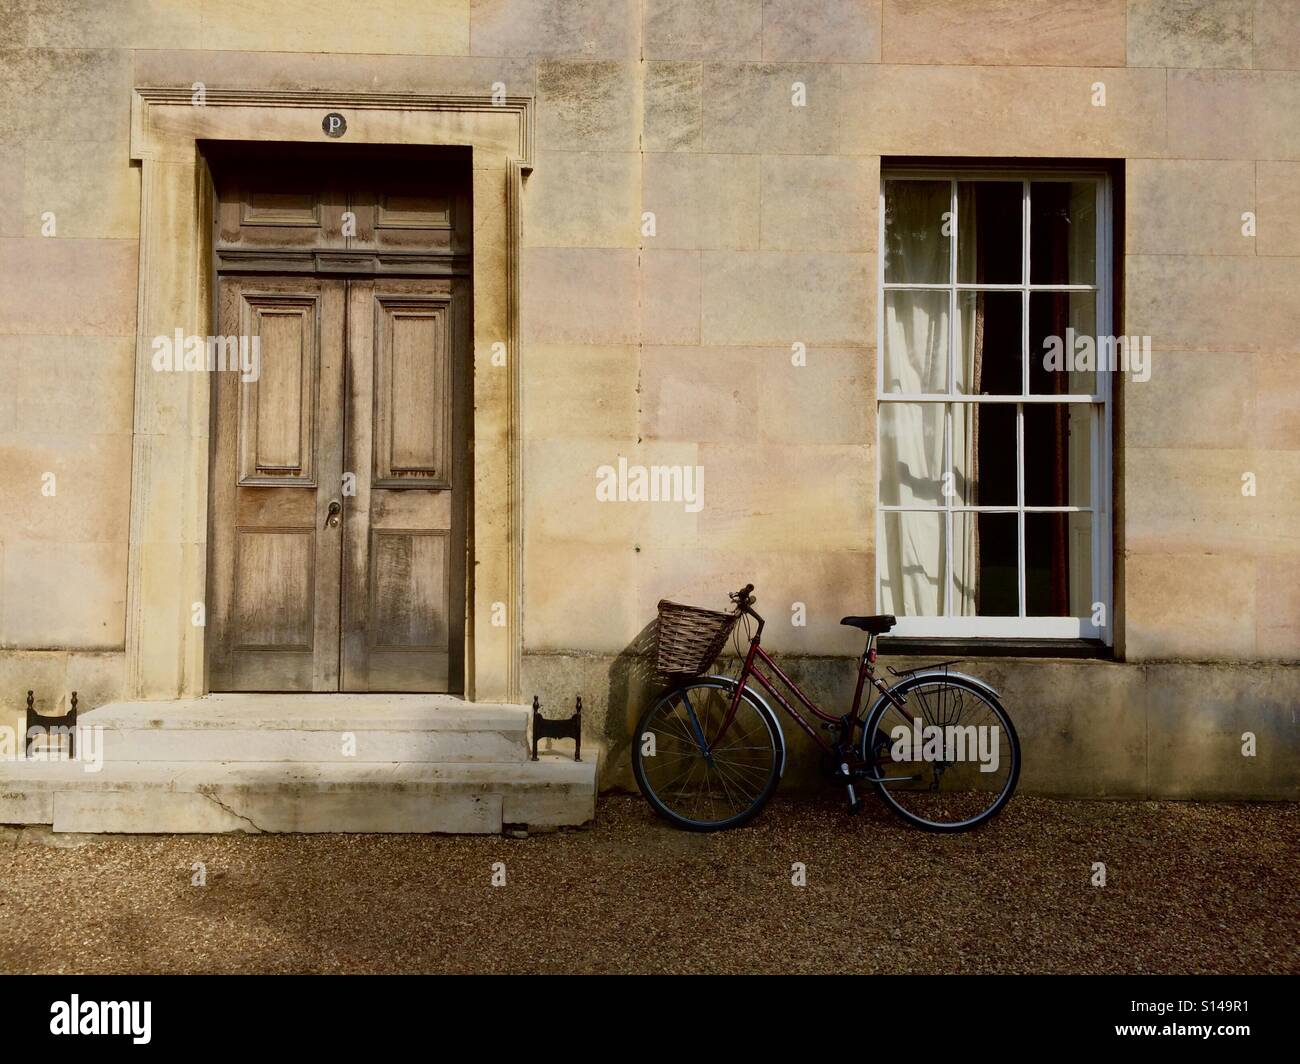 A bike rests against the wall of Downing College, Cambridge. - Stock Image